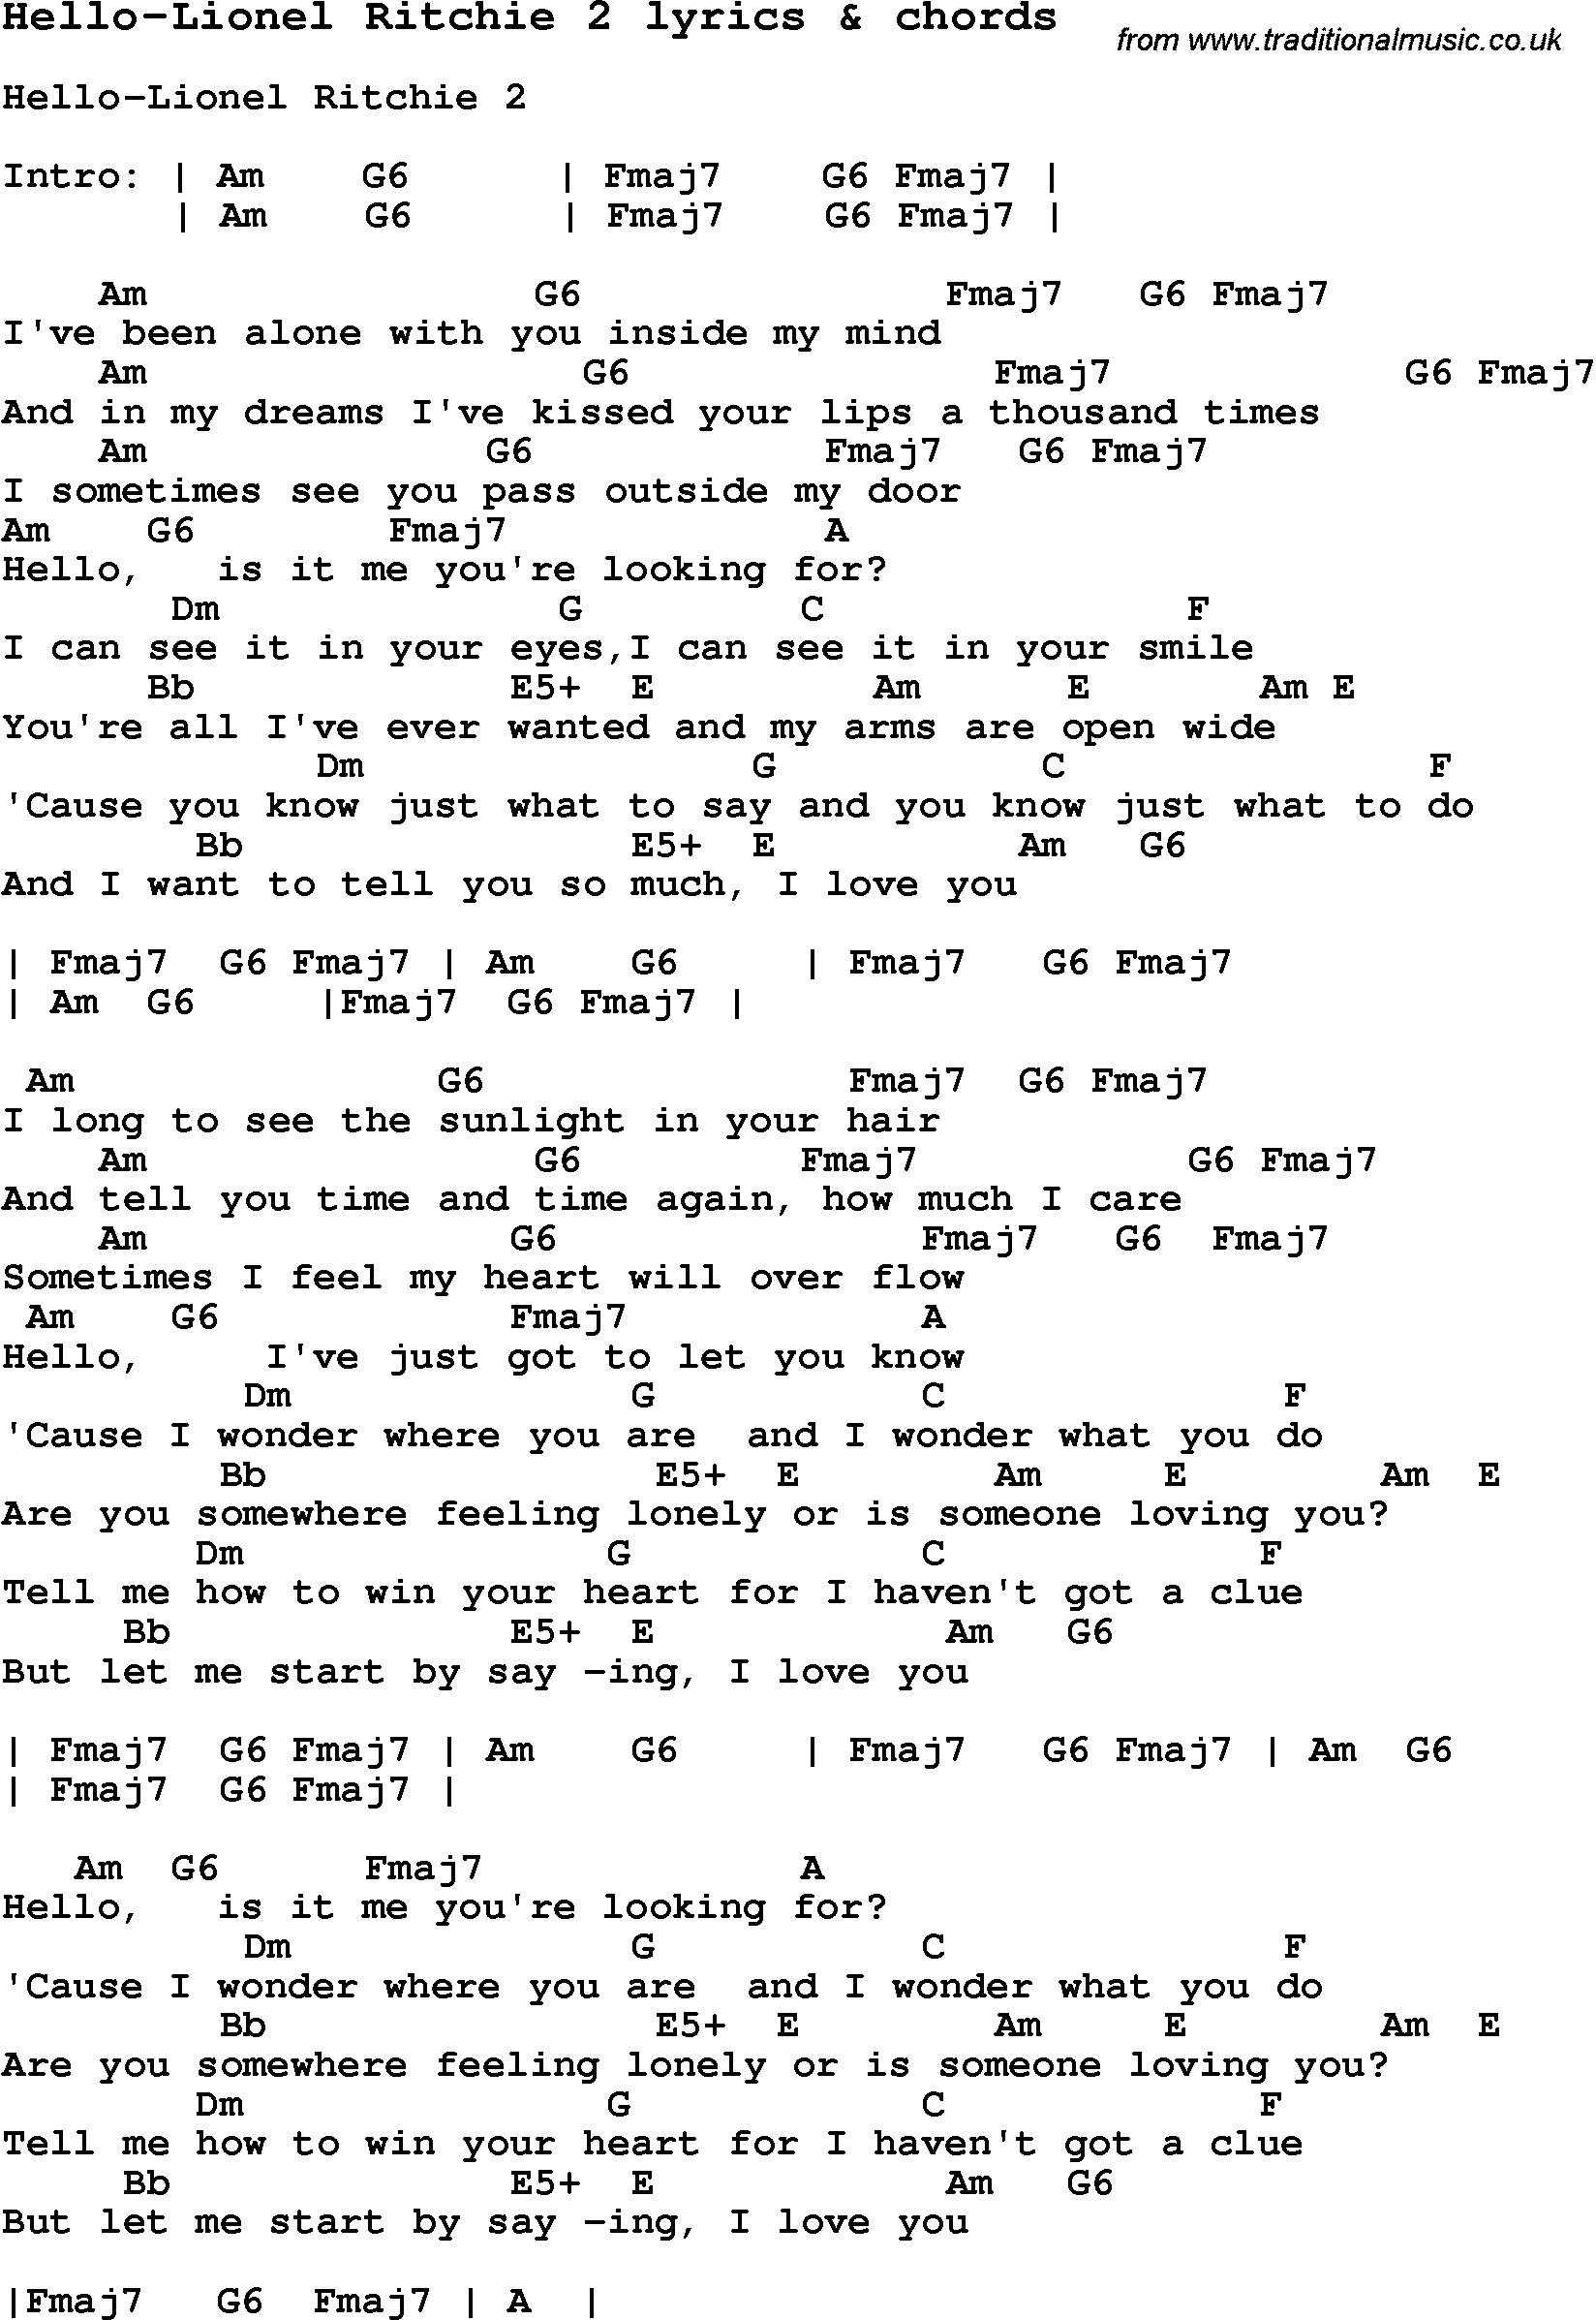 Hello Ukulele Chords Love Song Lyrics Forhello Lionel Ritchie 2 With Chords